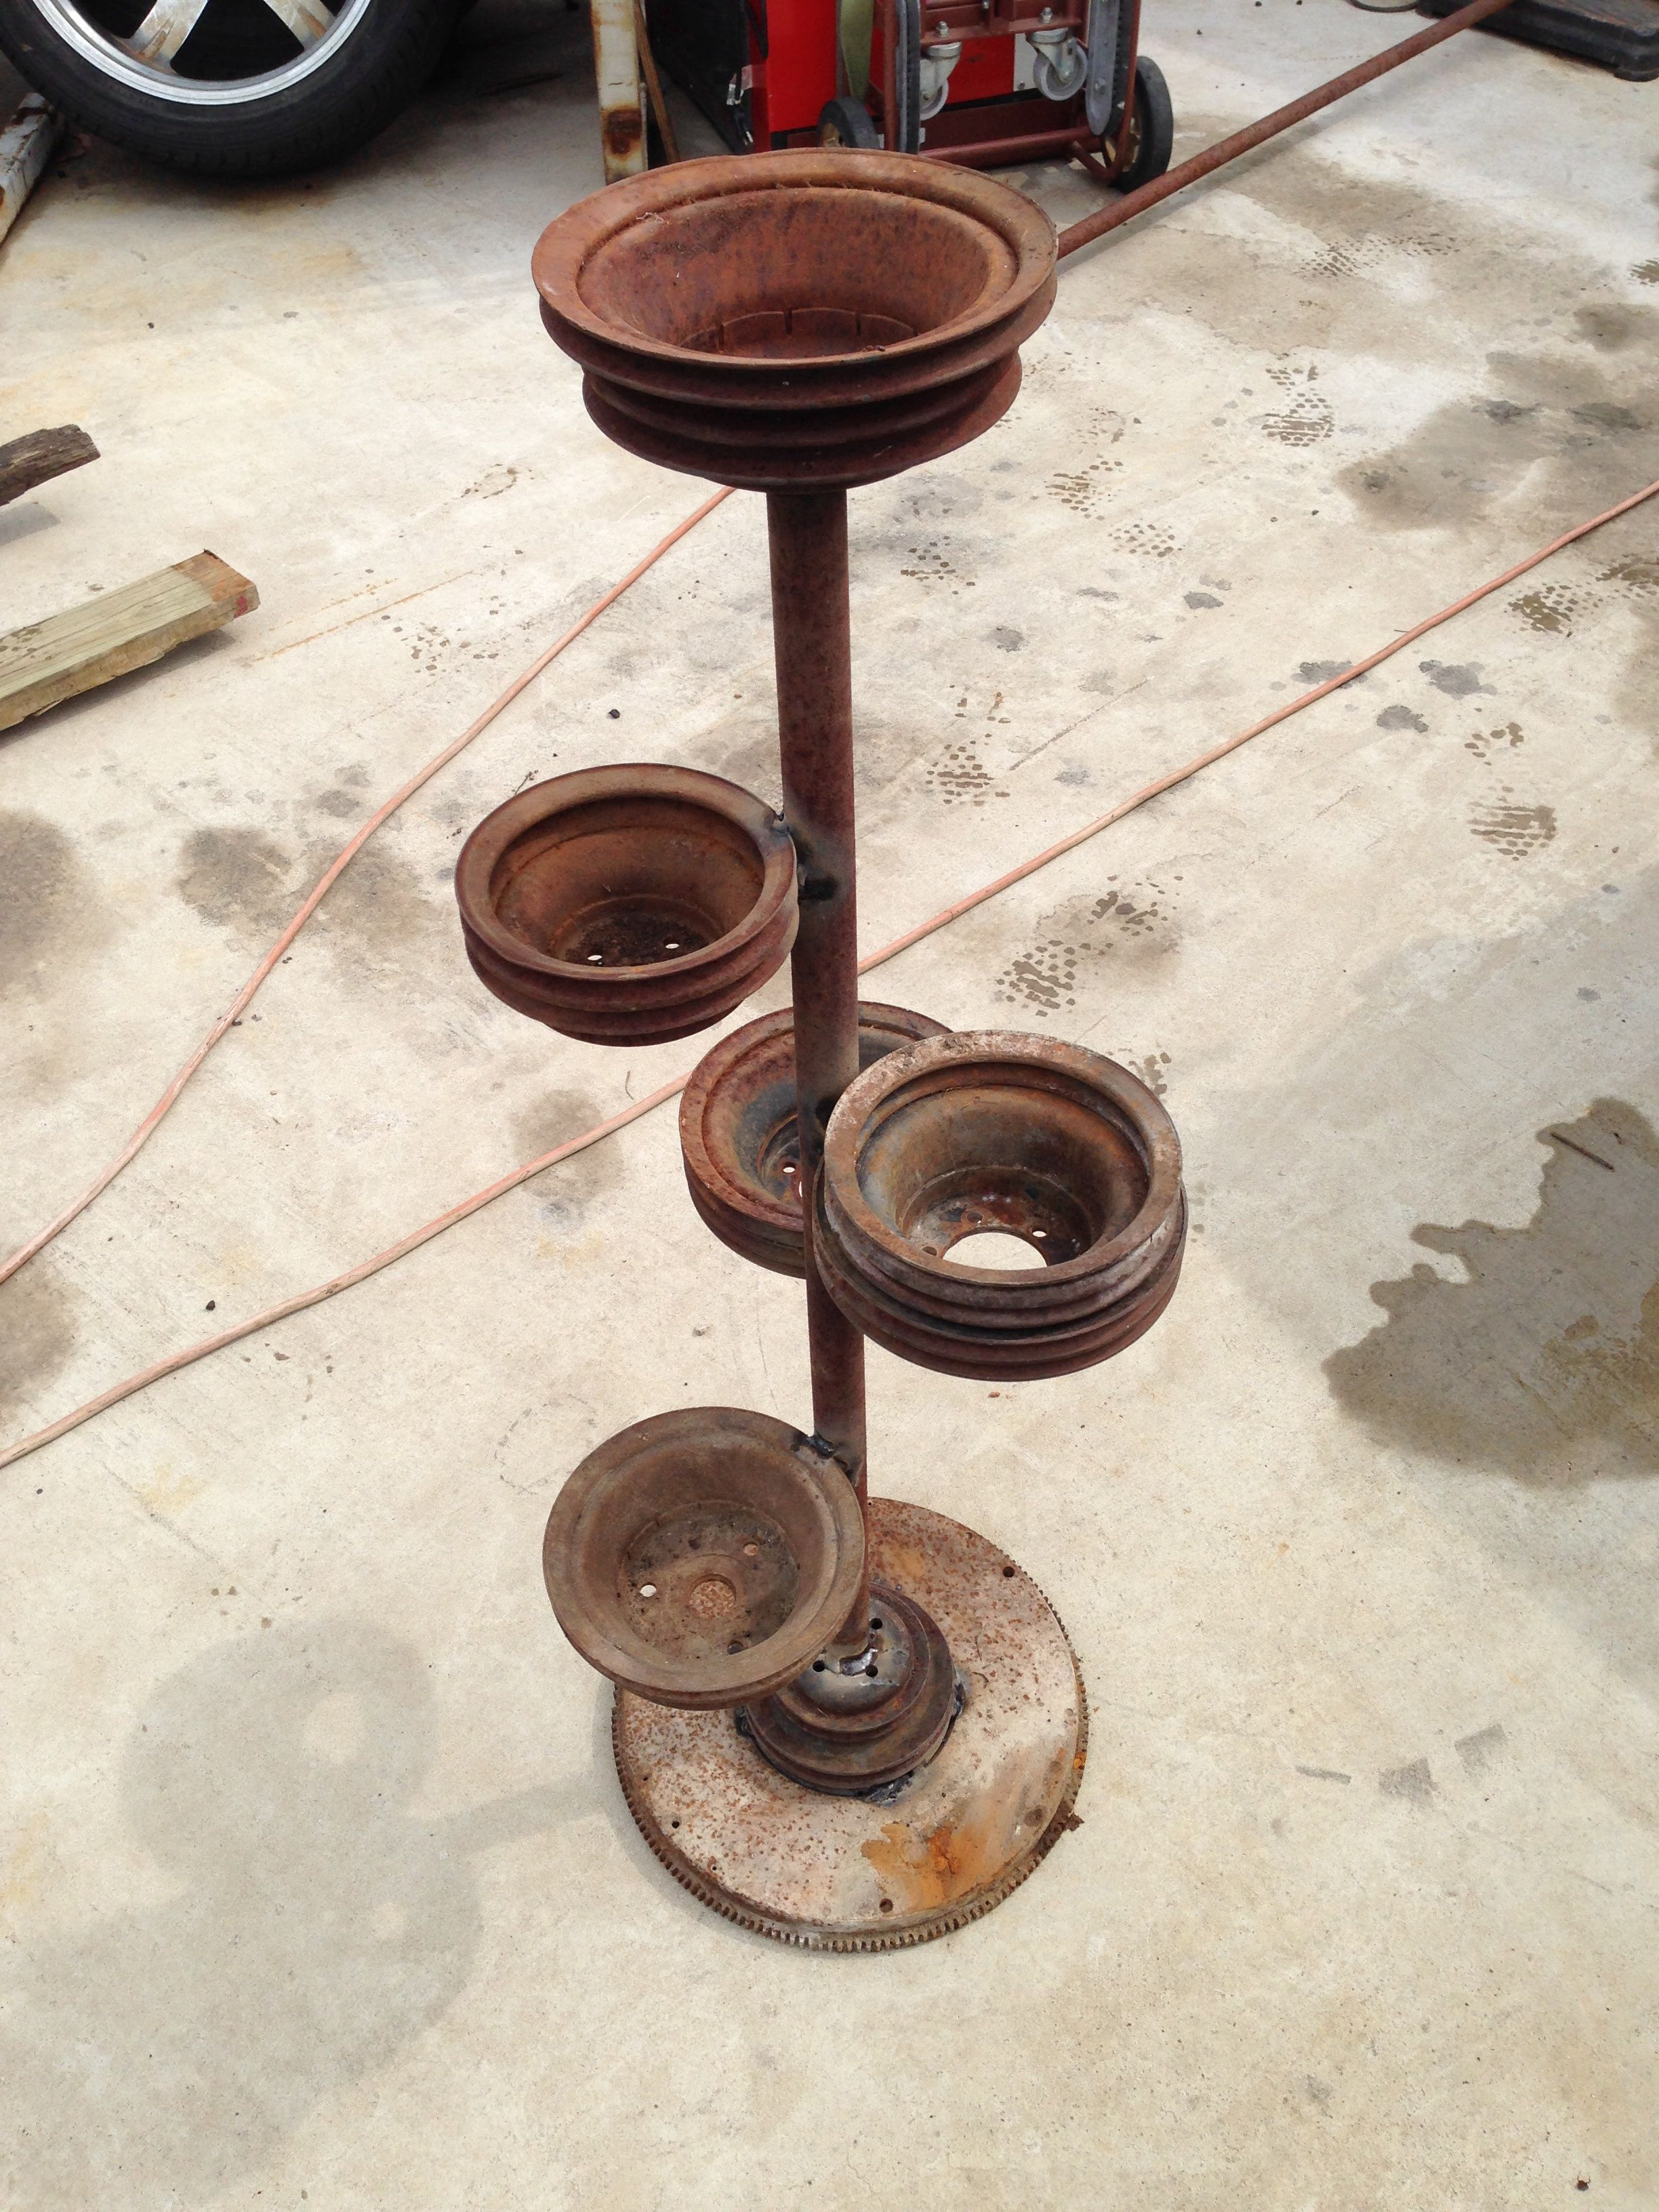 I Made This Plant Stand Out Of Old Car Parts A Flywheel Makes A